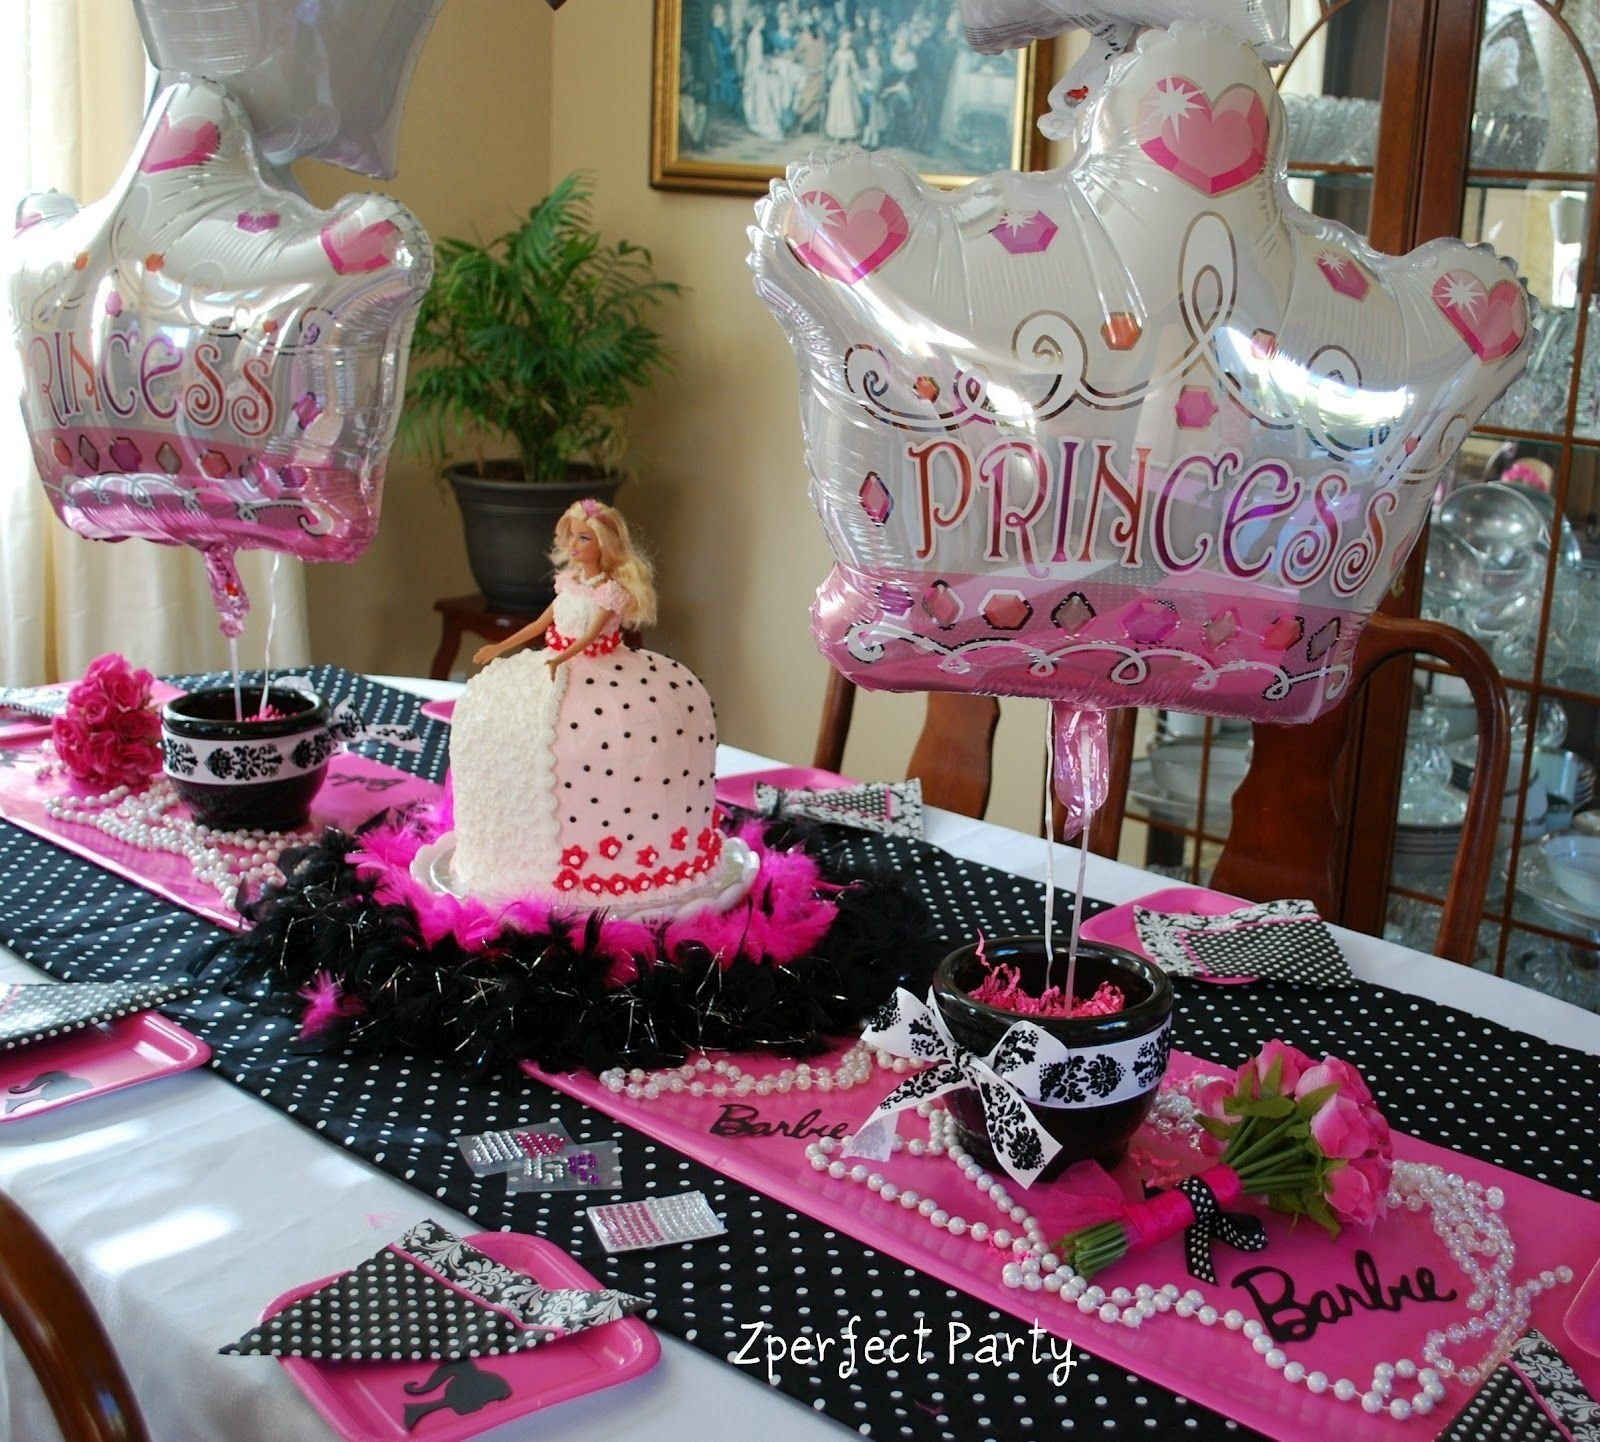 10 Great Birthday Party Ideas For 5 Year Old Girl image detail for rock star party place barbie dress up games 2 2021